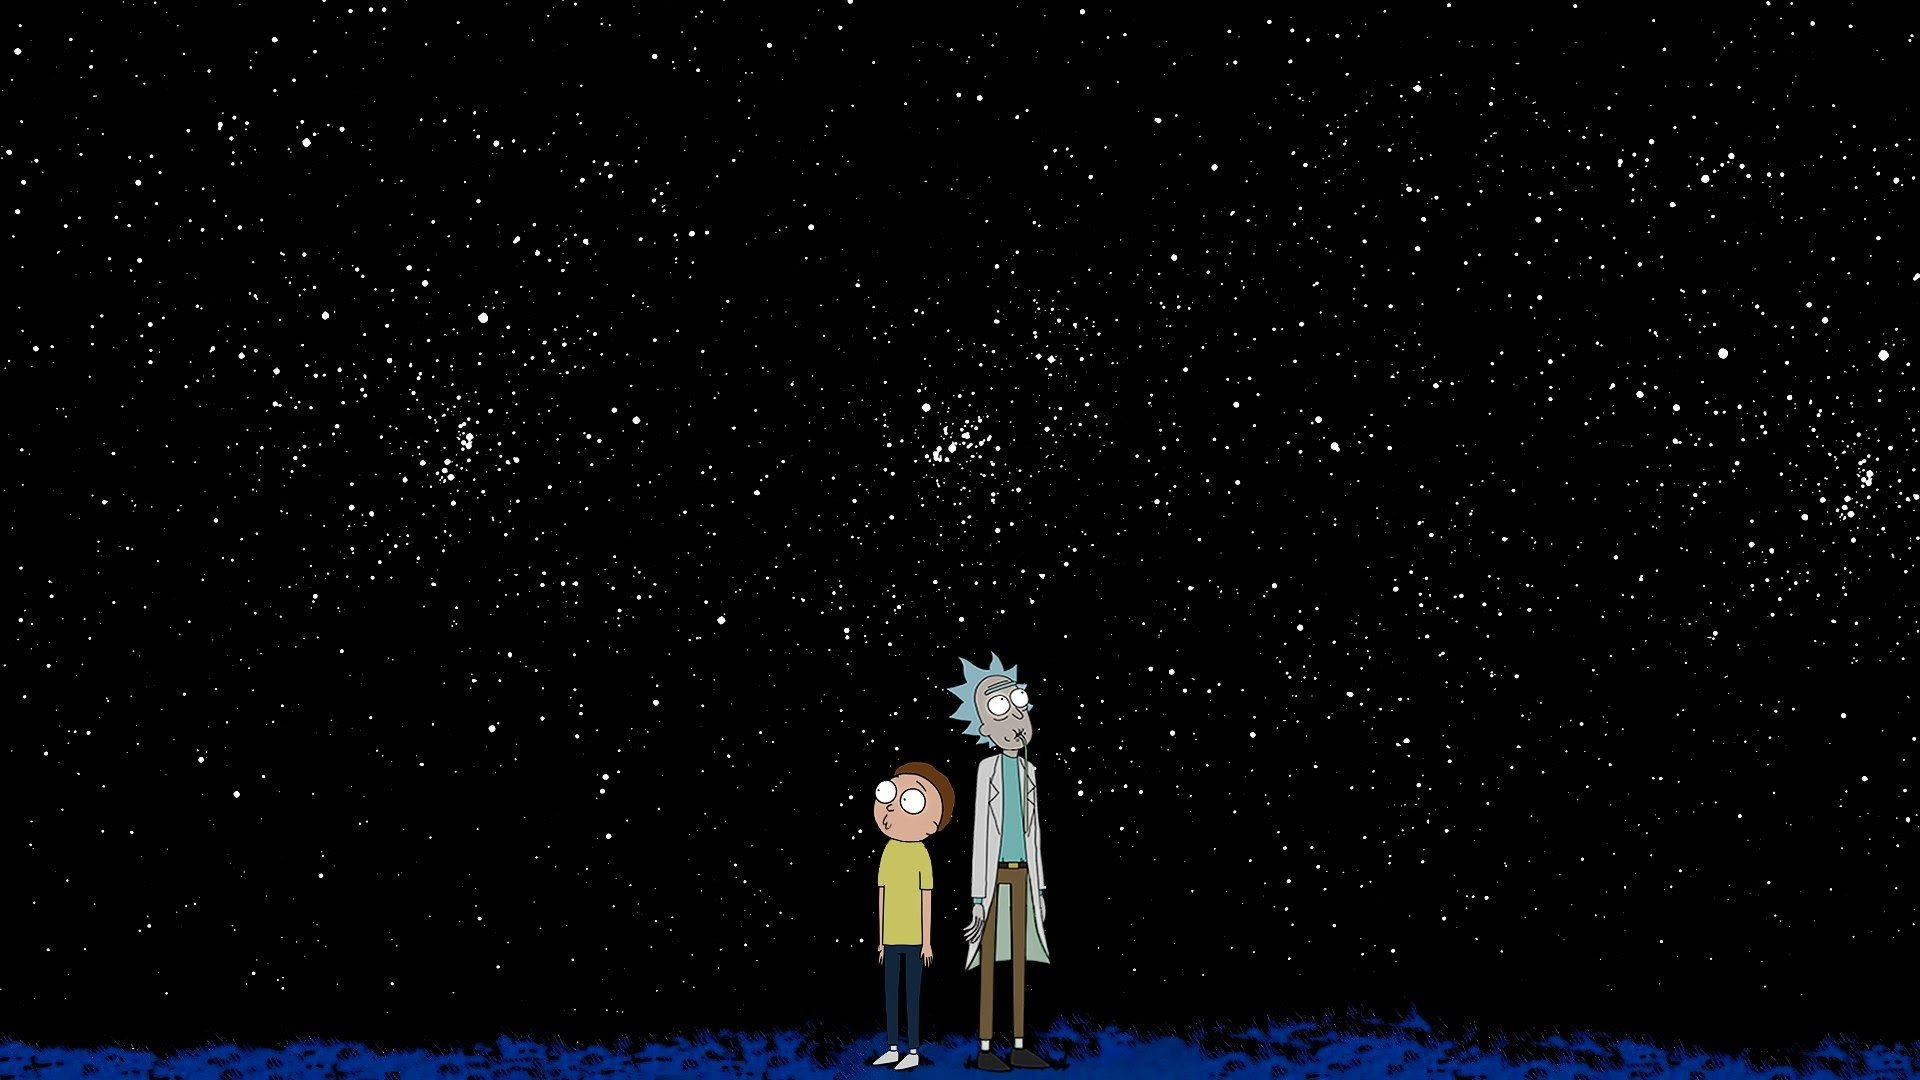 Beautiful Wallpaper High Quality Rick And Morty - thumb-1920-876589  HD_662795.jpg